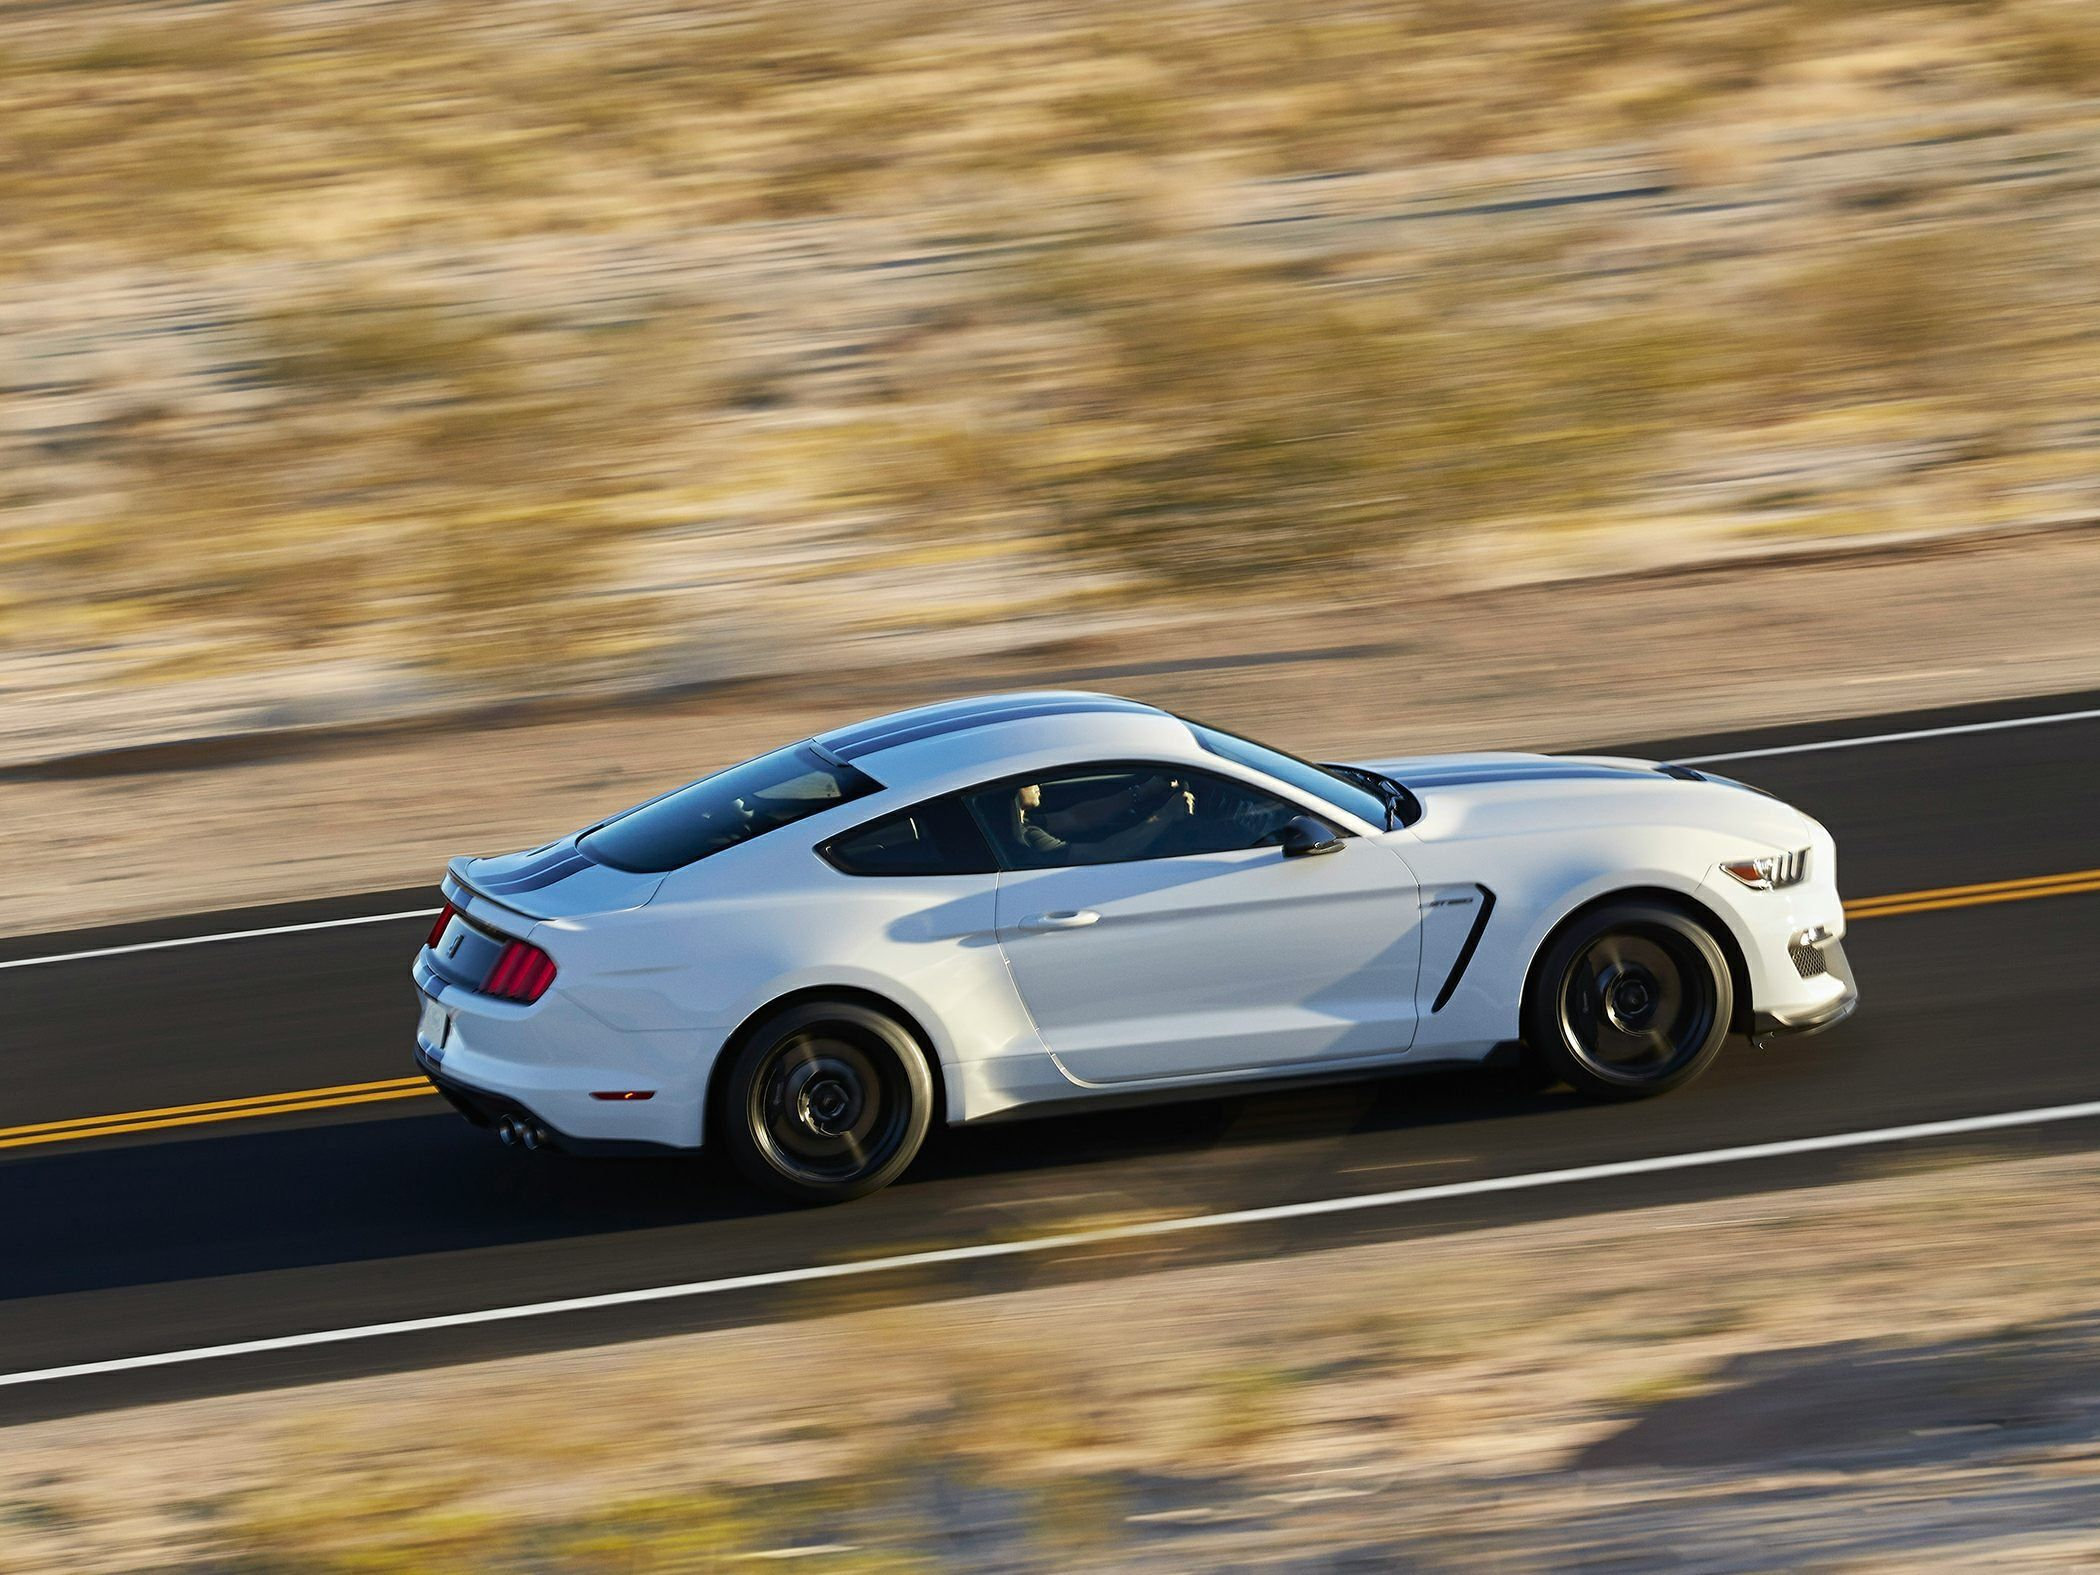 2020 Mustang Mach Ratings In 2020 Ford Mustang Ecoboost Mustang Ecoboost Ford Mustang Gt